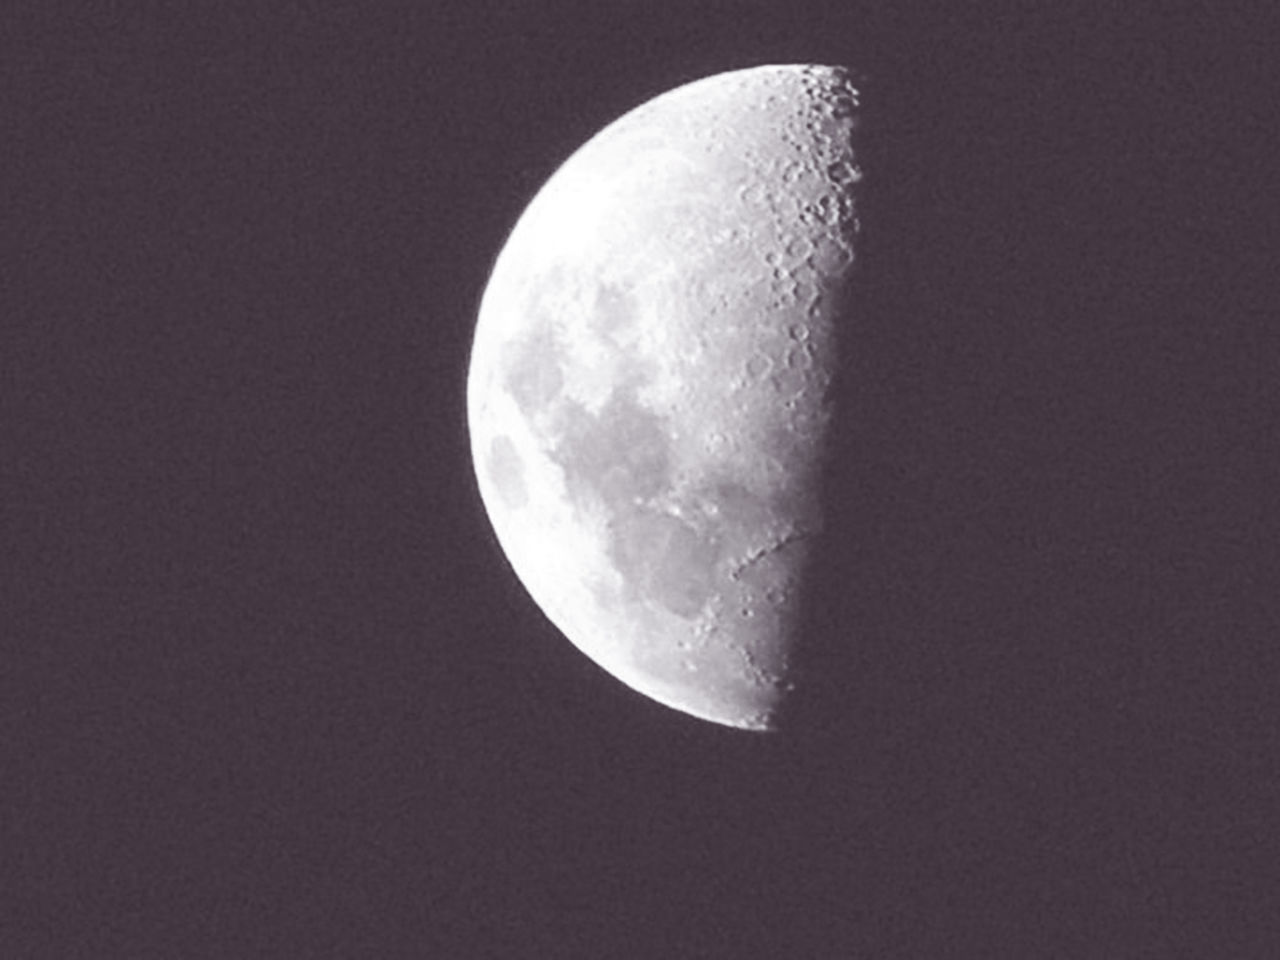 moon, astronomy, space, night, moon surface, nature, no people, sky, outdoors, space exploration, beauty in nature, scenics, half moon, close-up, satellite view